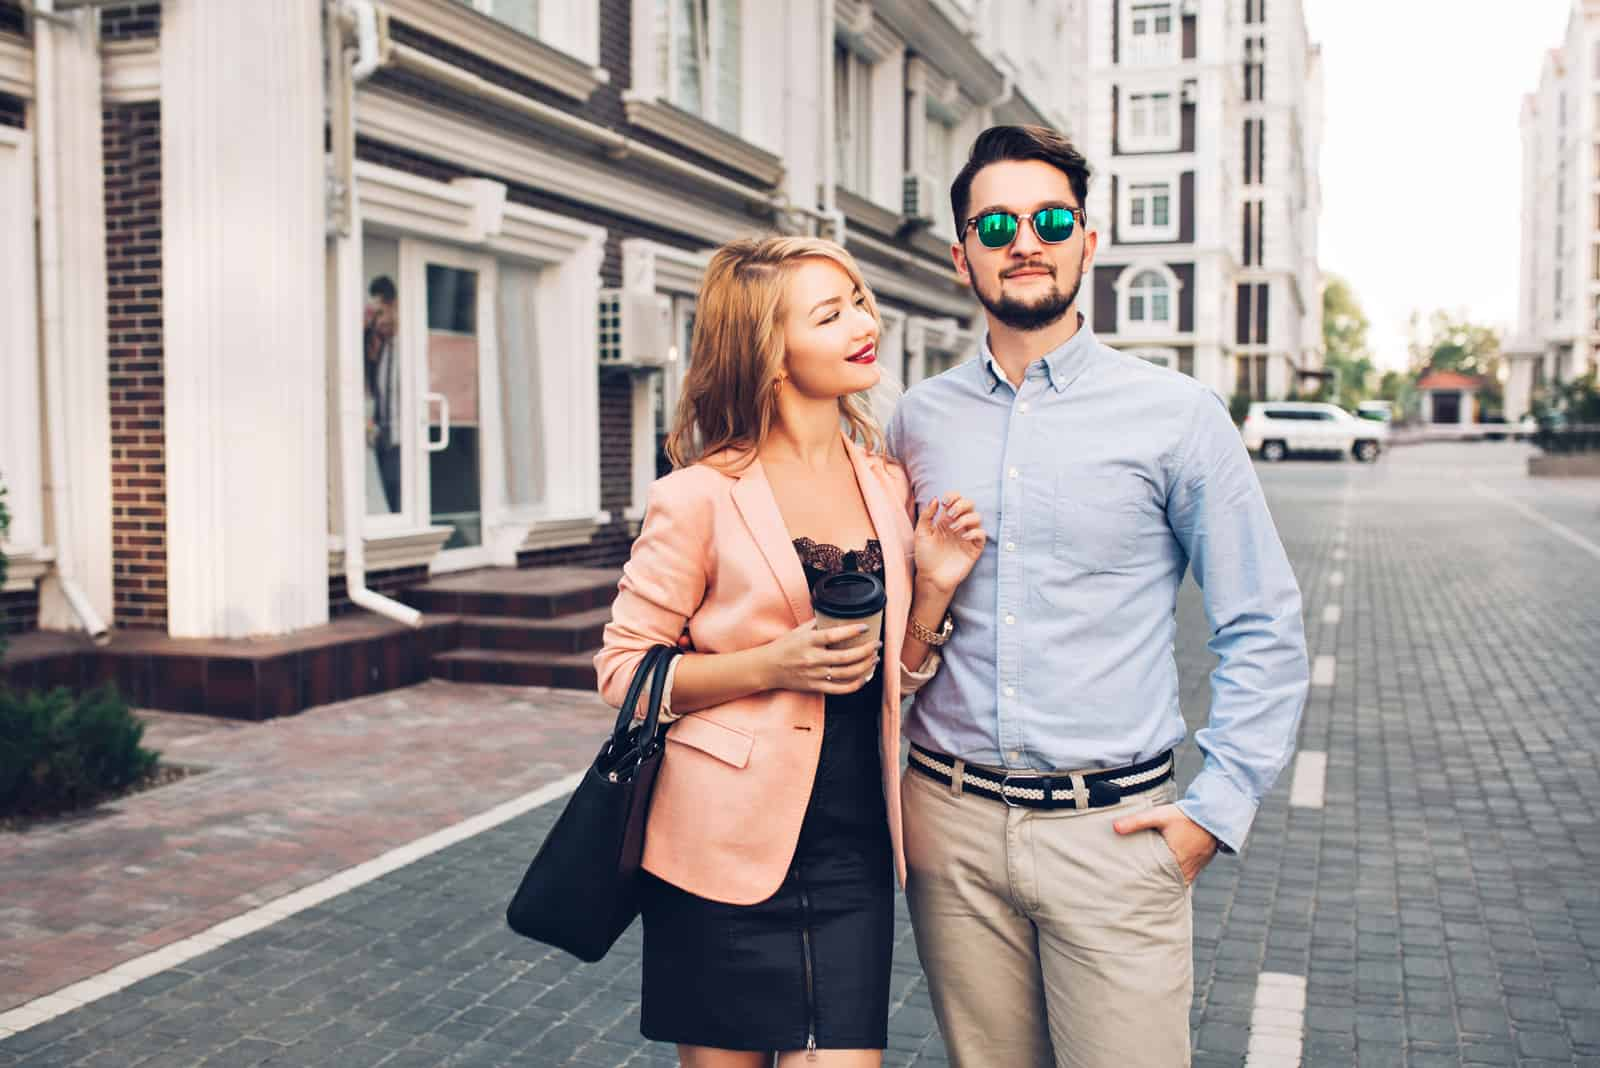 a man hugged a woman as they stood in the street